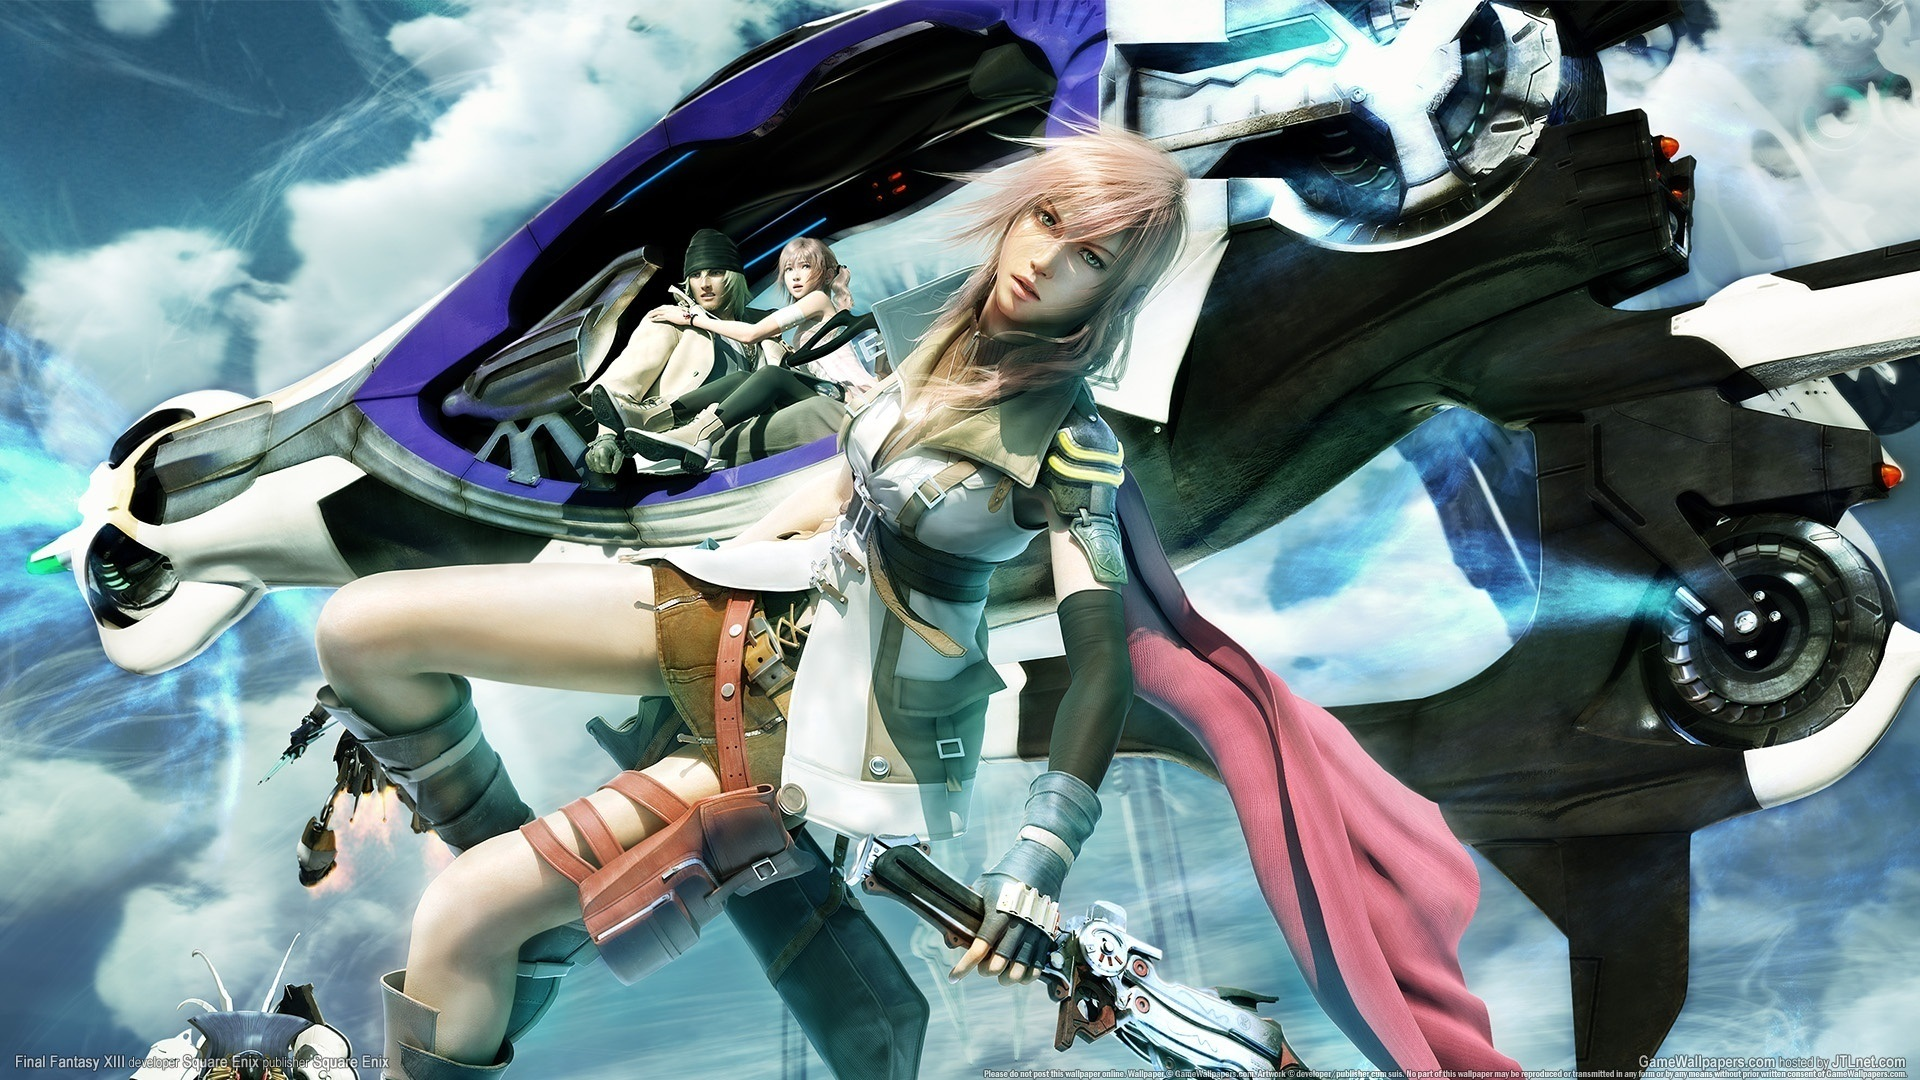 Final Fantasy 13 Iphone Wallpaper Celeb Wallpapers Wallpapers